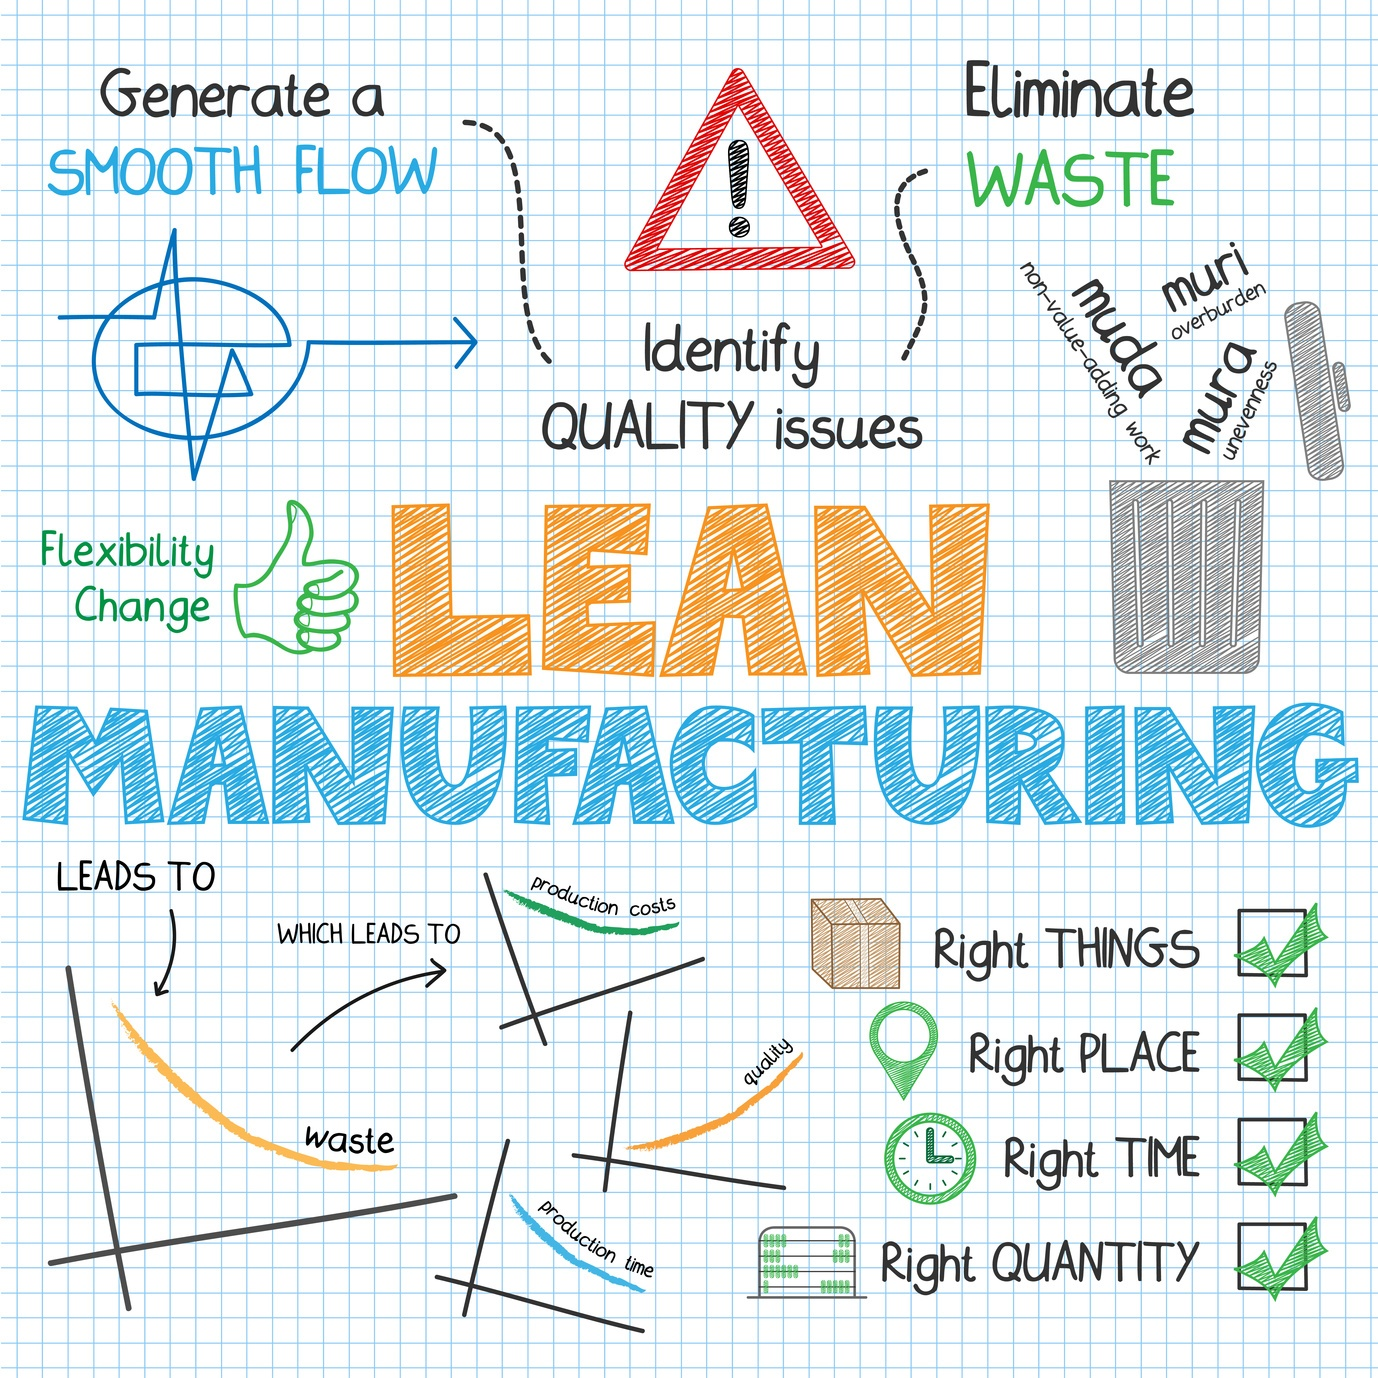 Concepts in Lean Manufacturing for manufacturing companies.